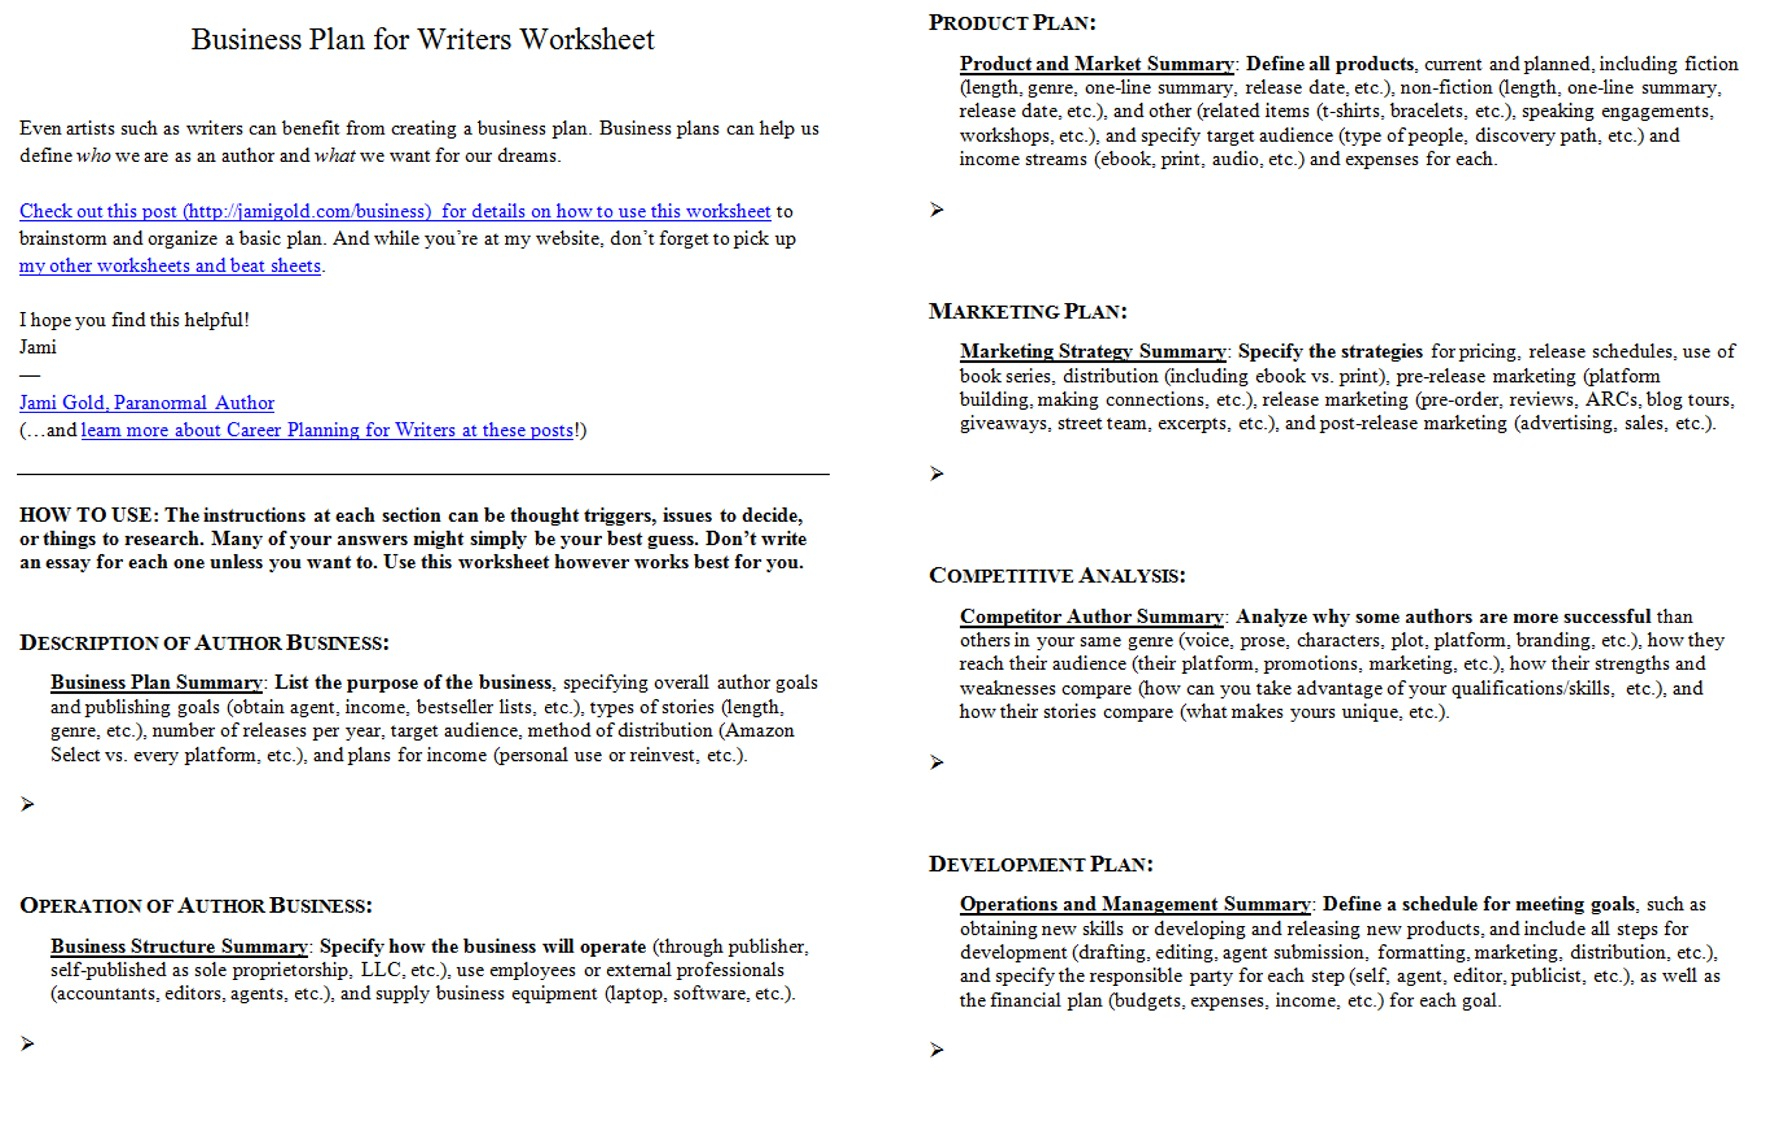 Aldiablosus  Winning Worksheets For Writers  Jami Gold Paranormal Author With Entrancing Screen Shot Of Both Pages Of The Business Plan For Writers Worksheet With Captivating Solving Multi Step Inequalities Worksheet Also Grammar Practice Worksheets In Addition Free Sight Word Worksheets And Helping Verbs Worksheet As Well As The Roman Republic Worksheet Additionally Simplify Expressions Worksheet From Jamigoldcom With Aldiablosus  Entrancing Worksheets For Writers  Jami Gold Paranormal Author With Captivating Screen Shot Of Both Pages Of The Business Plan For Writers Worksheet And Winning Solving Multi Step Inequalities Worksheet Also Grammar Practice Worksheets In Addition Free Sight Word Worksheets From Jamigoldcom